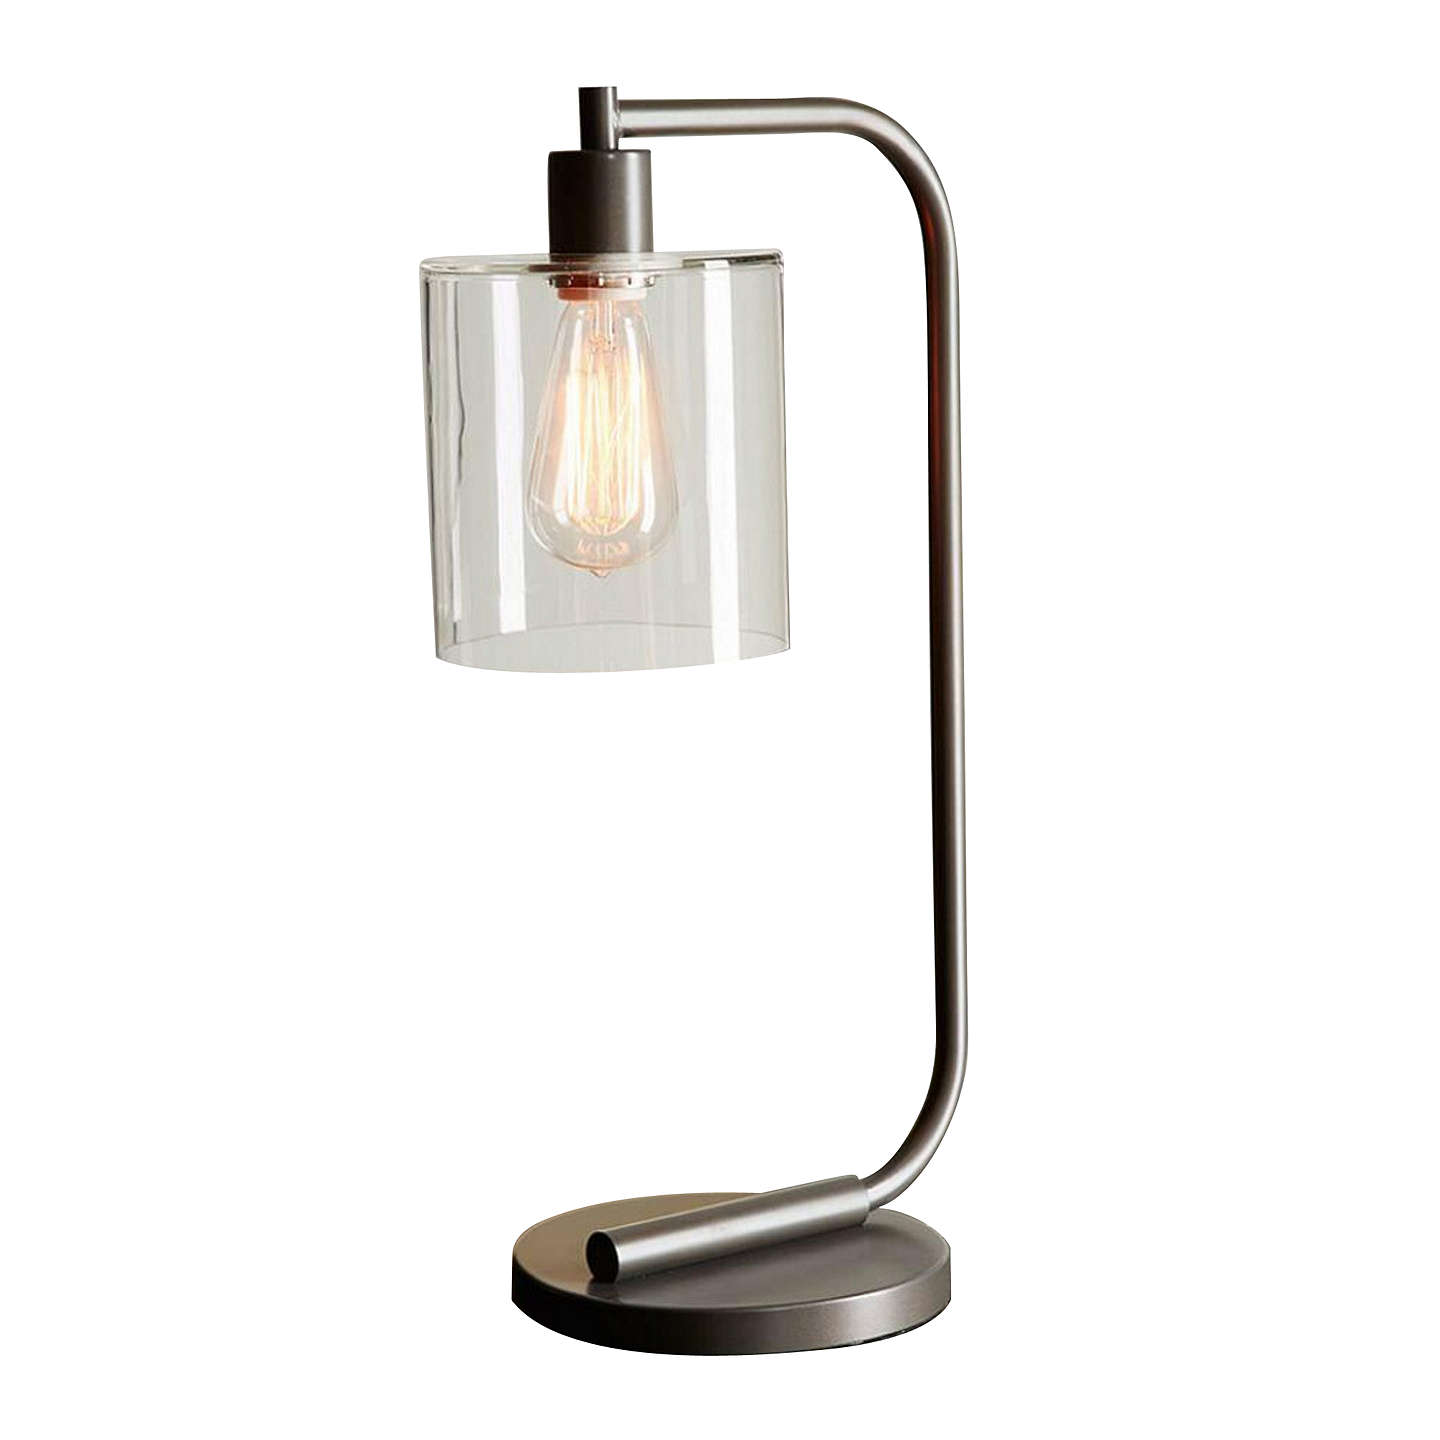 Buywest elm Lens Table Lamp, Antique Bronze Online at johnlewis.com